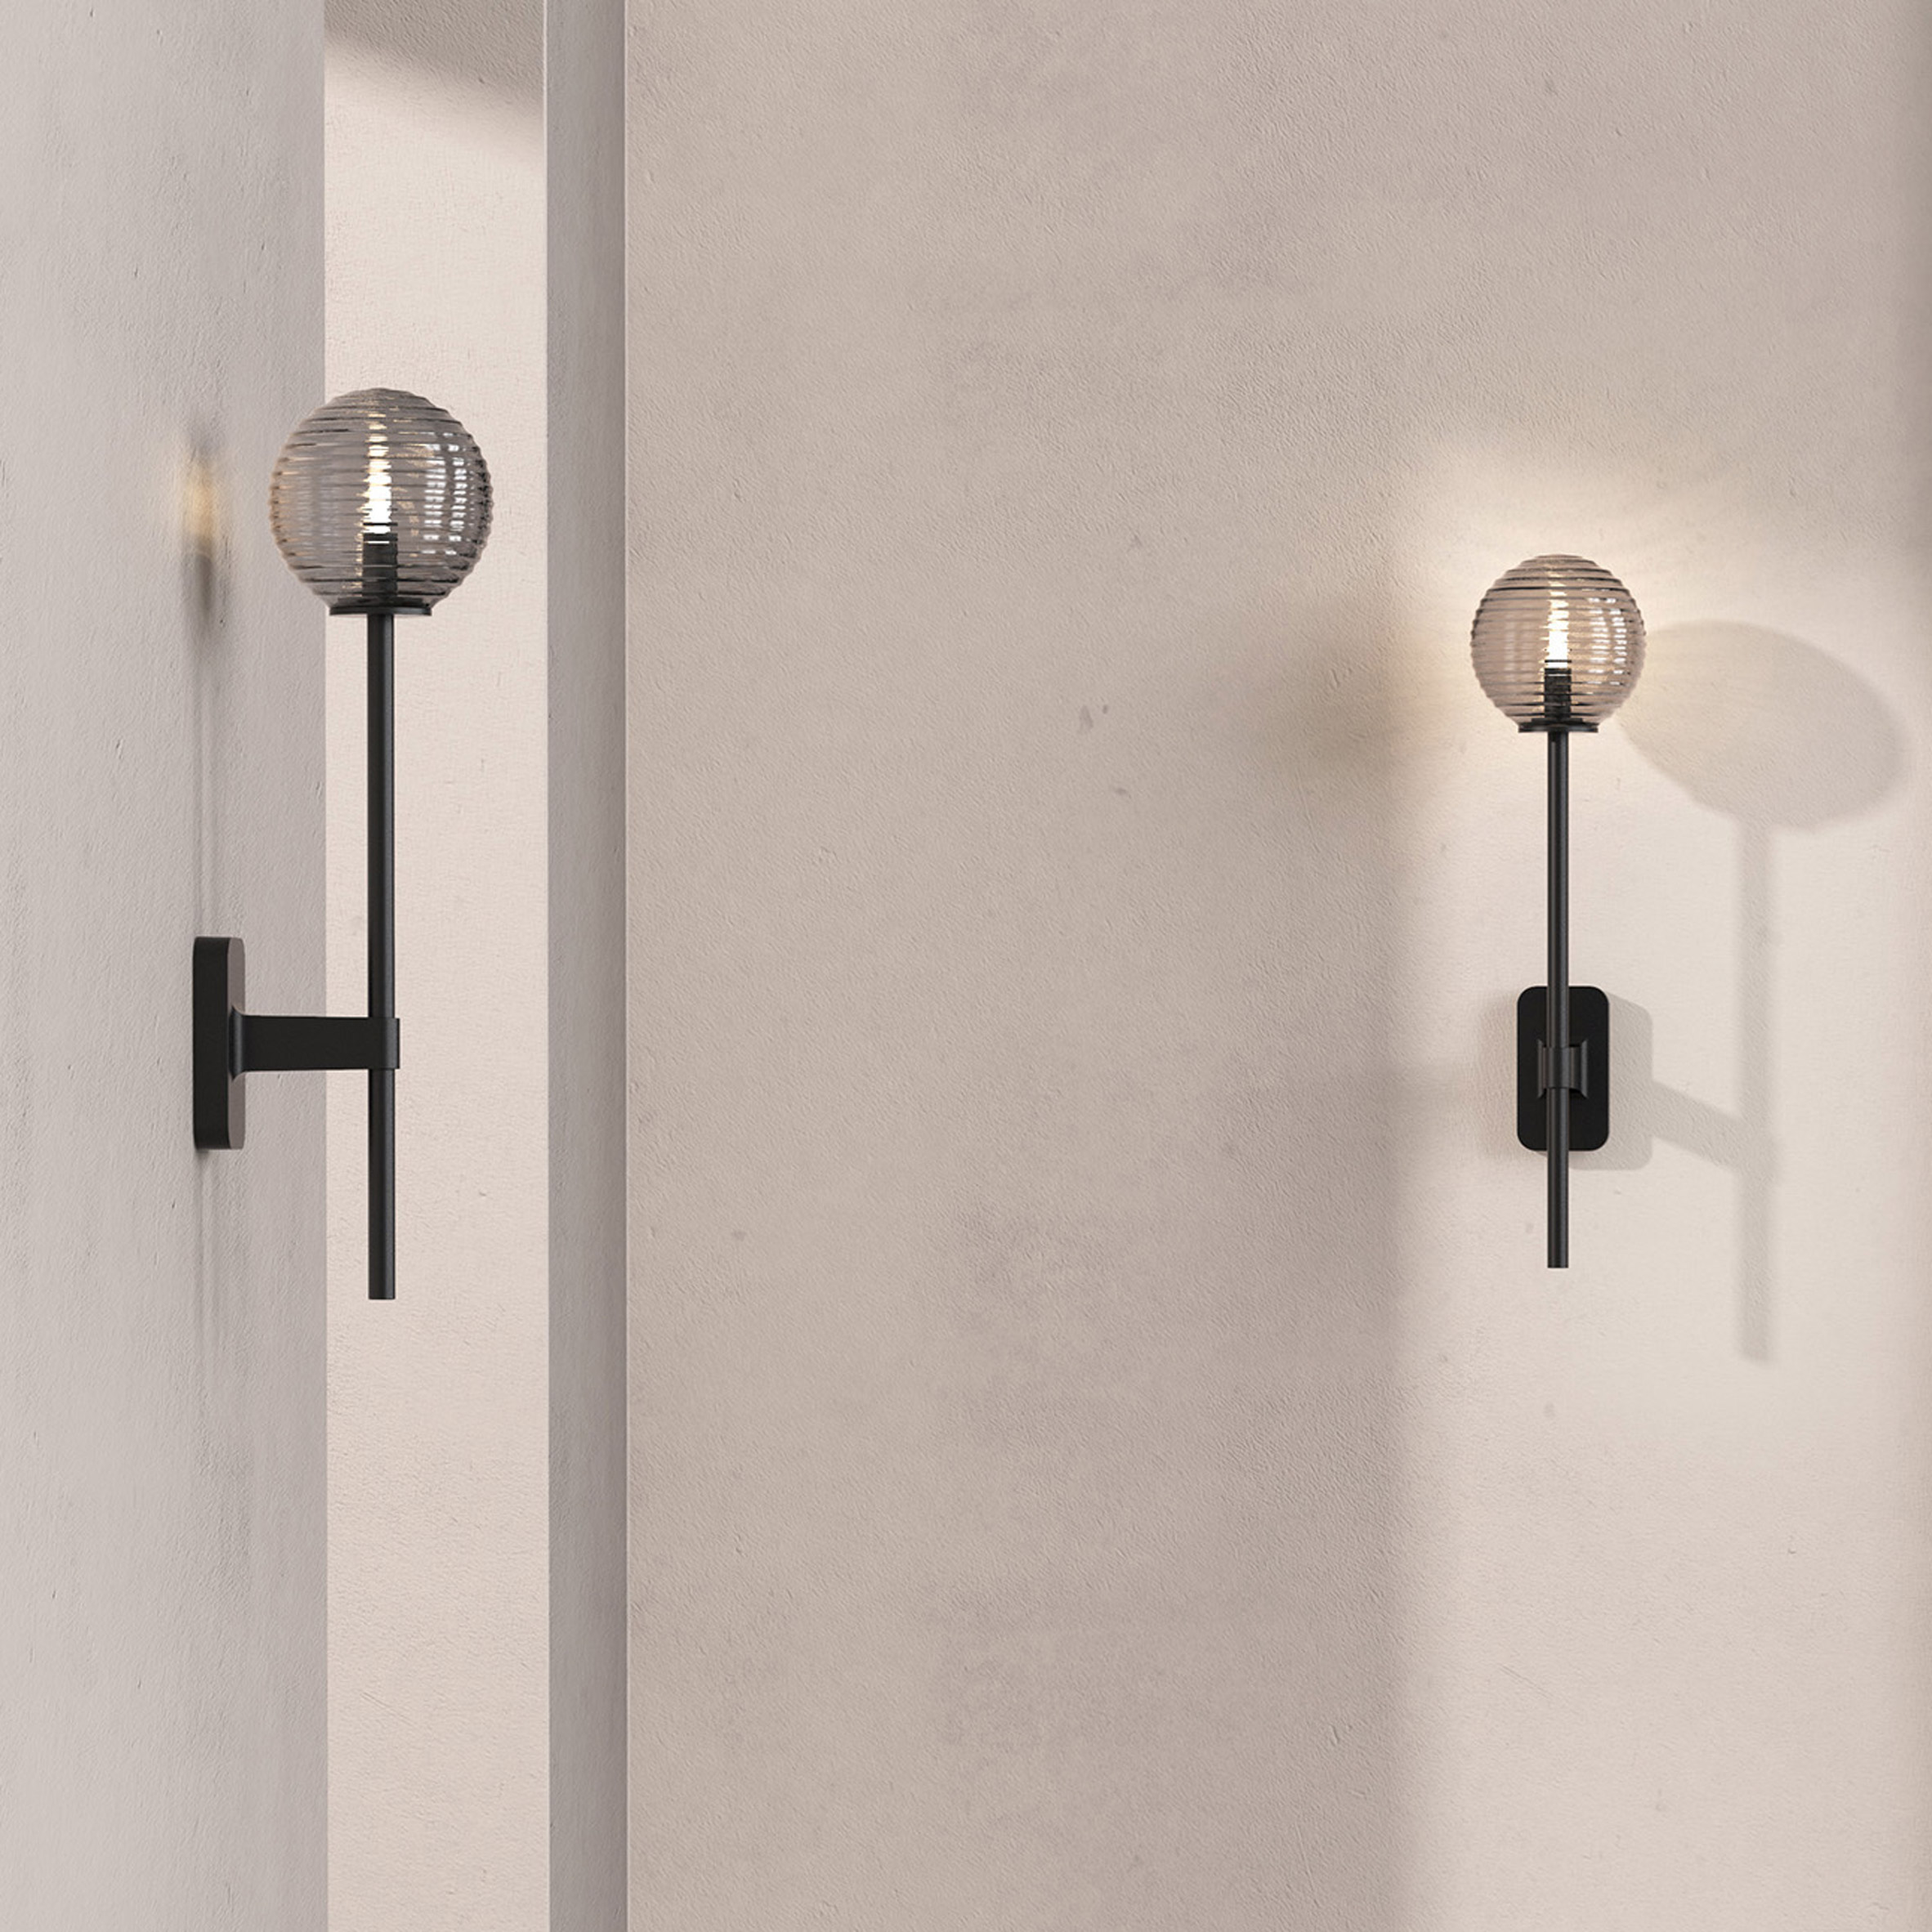 Tacoma sconce by Astro Lighting